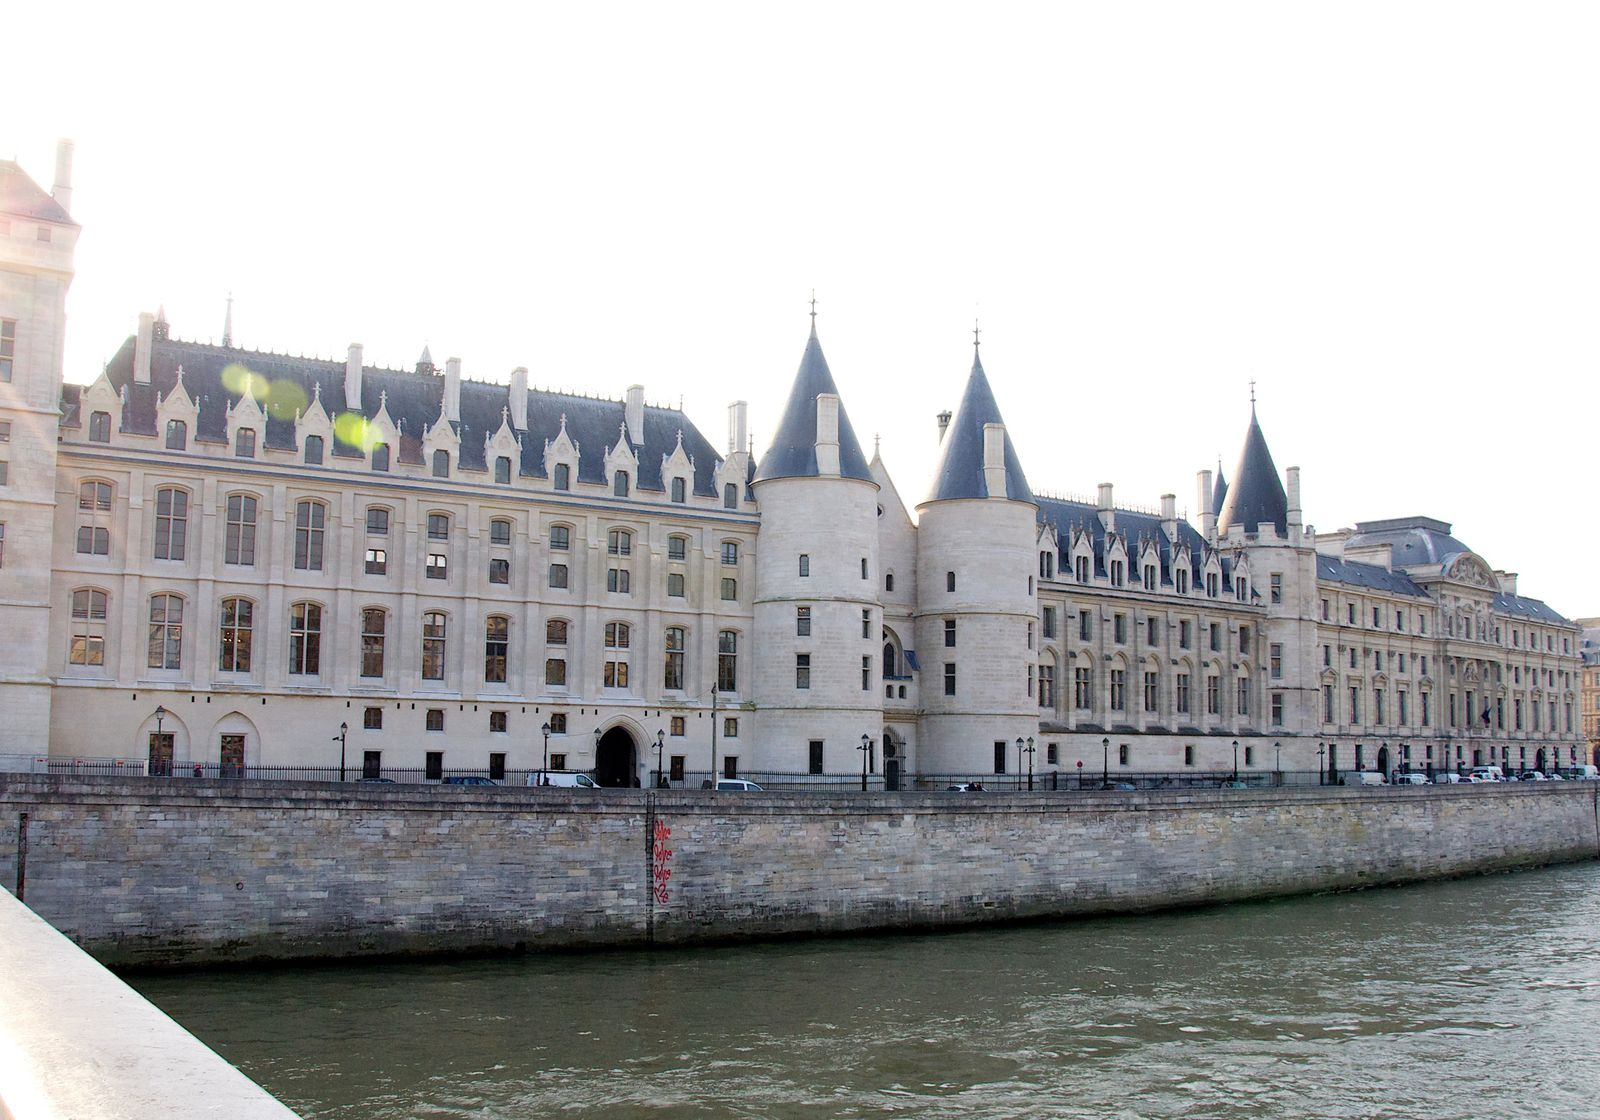 la conciergerie-Paris.